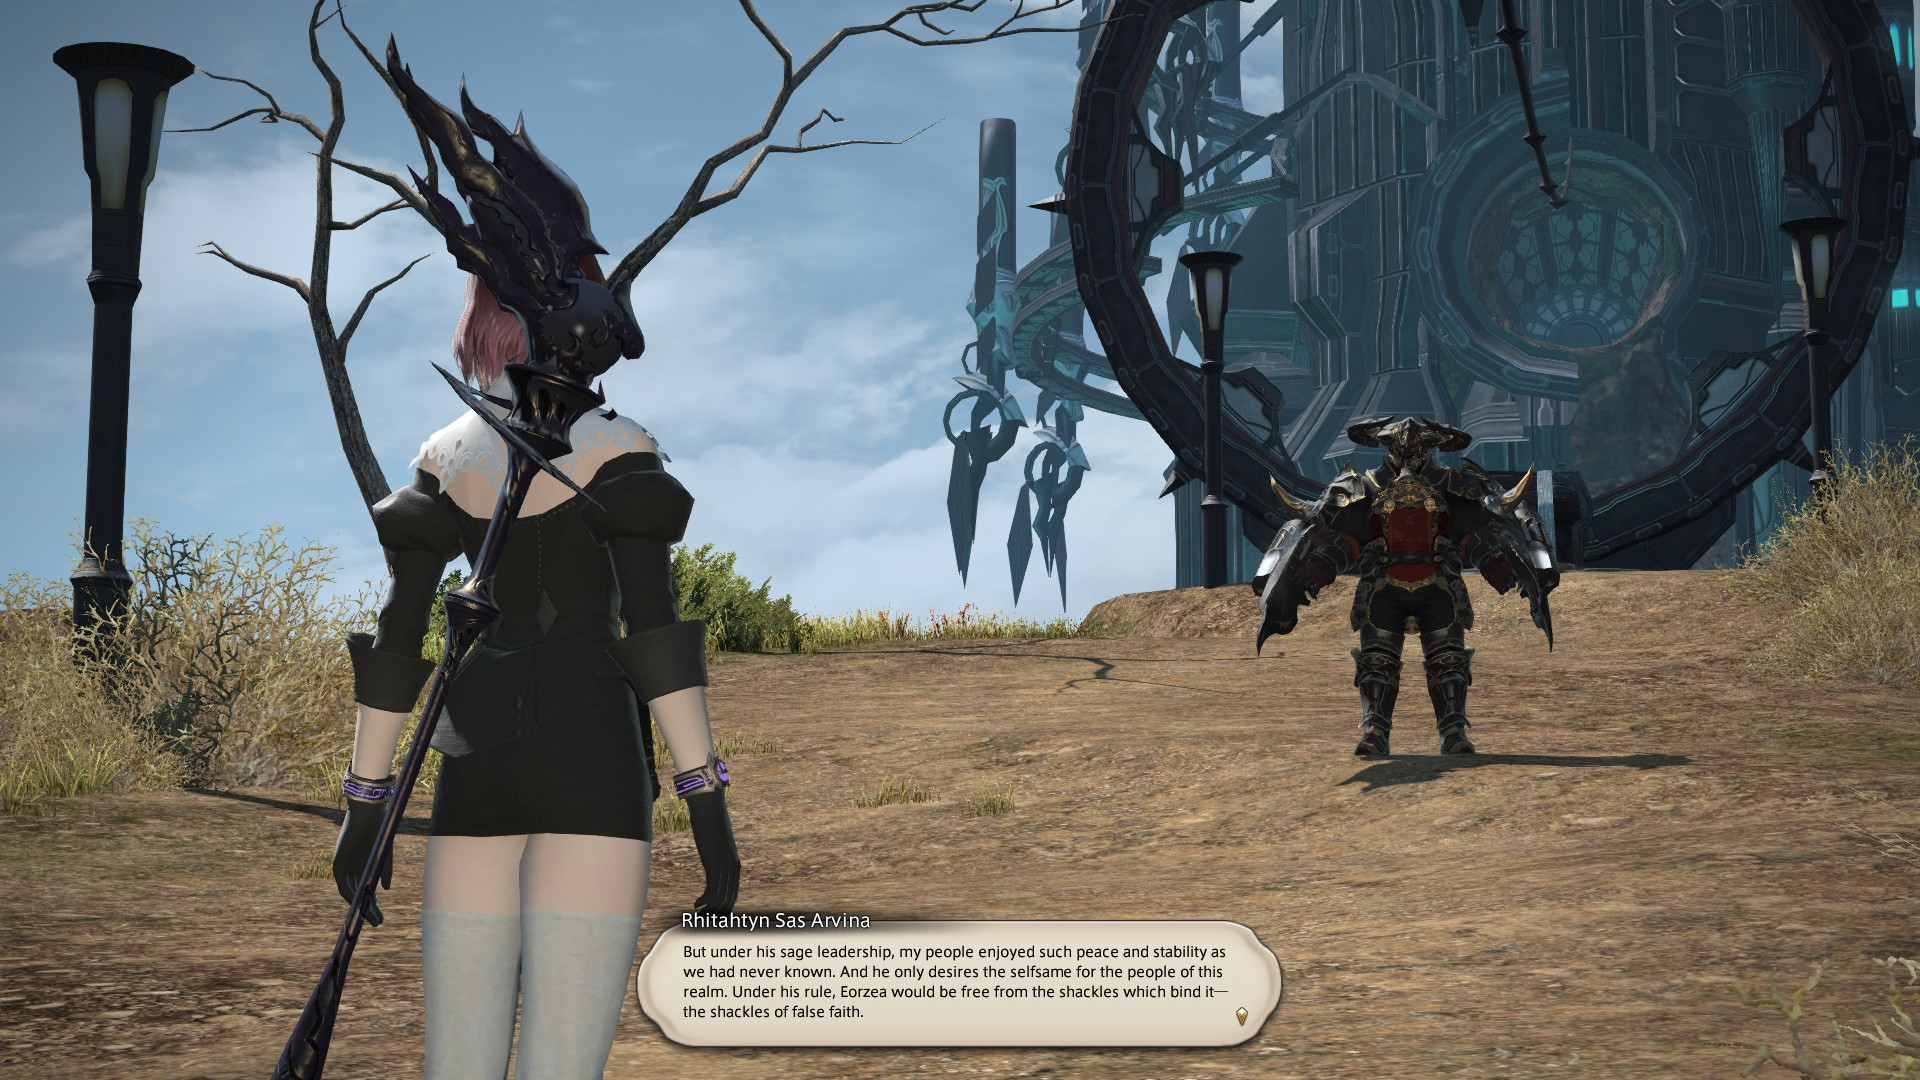 Final Fantasy XIV Trials Guide: Defeat Ifrit, Garuda, Titan